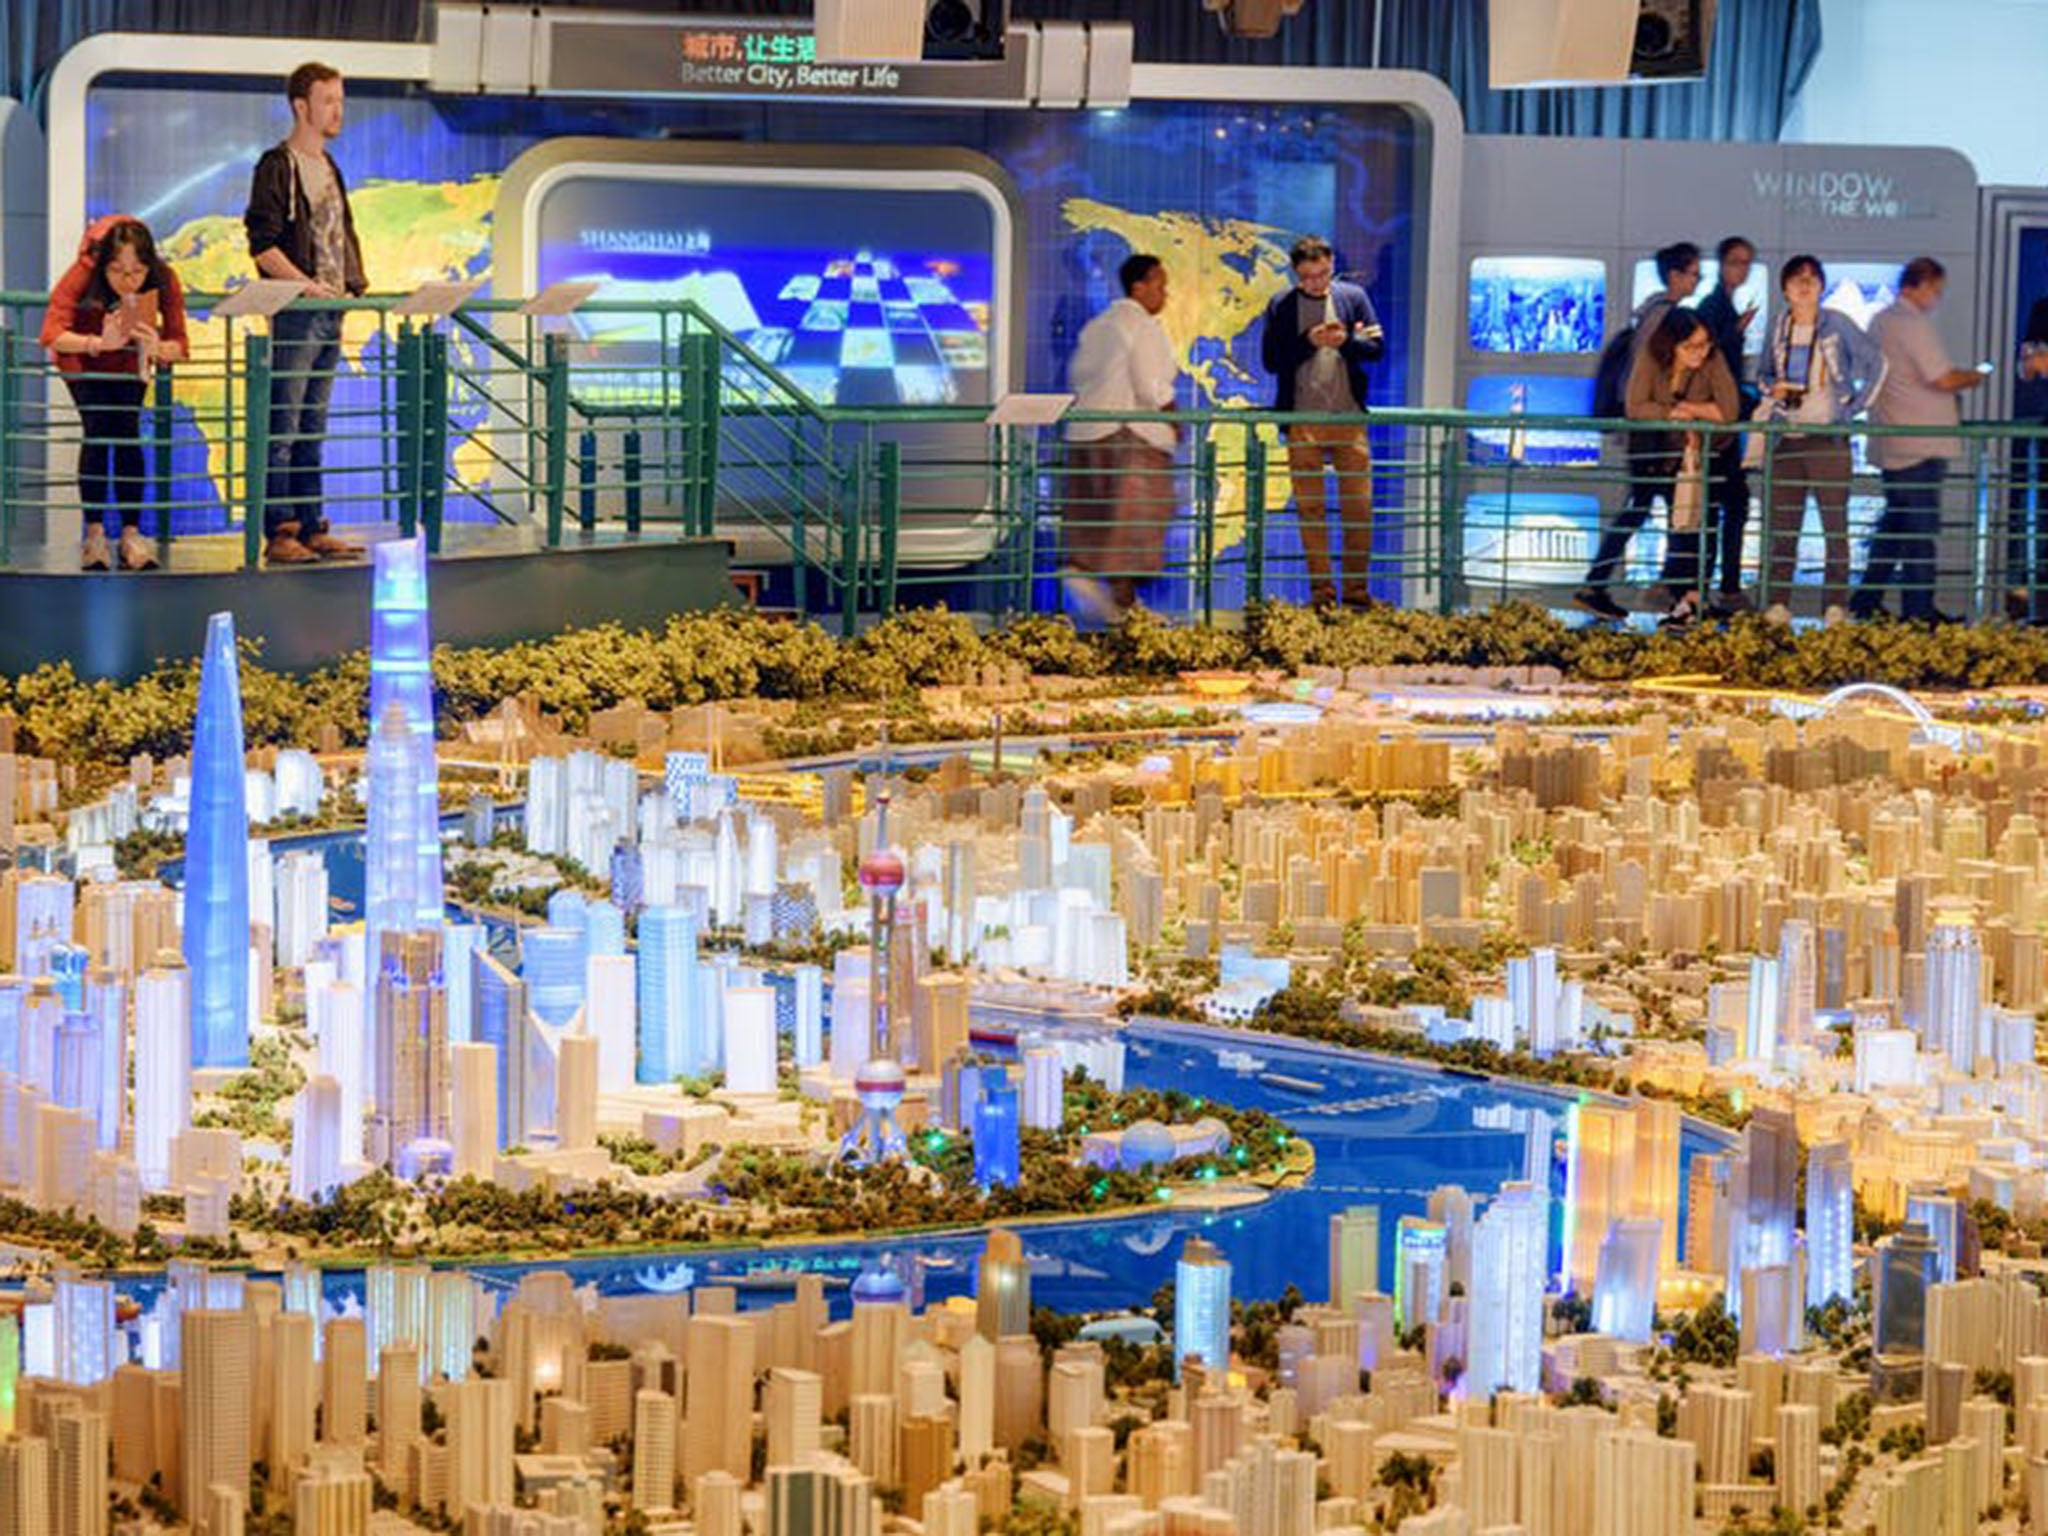 Urban rooms allow people to design their city's future